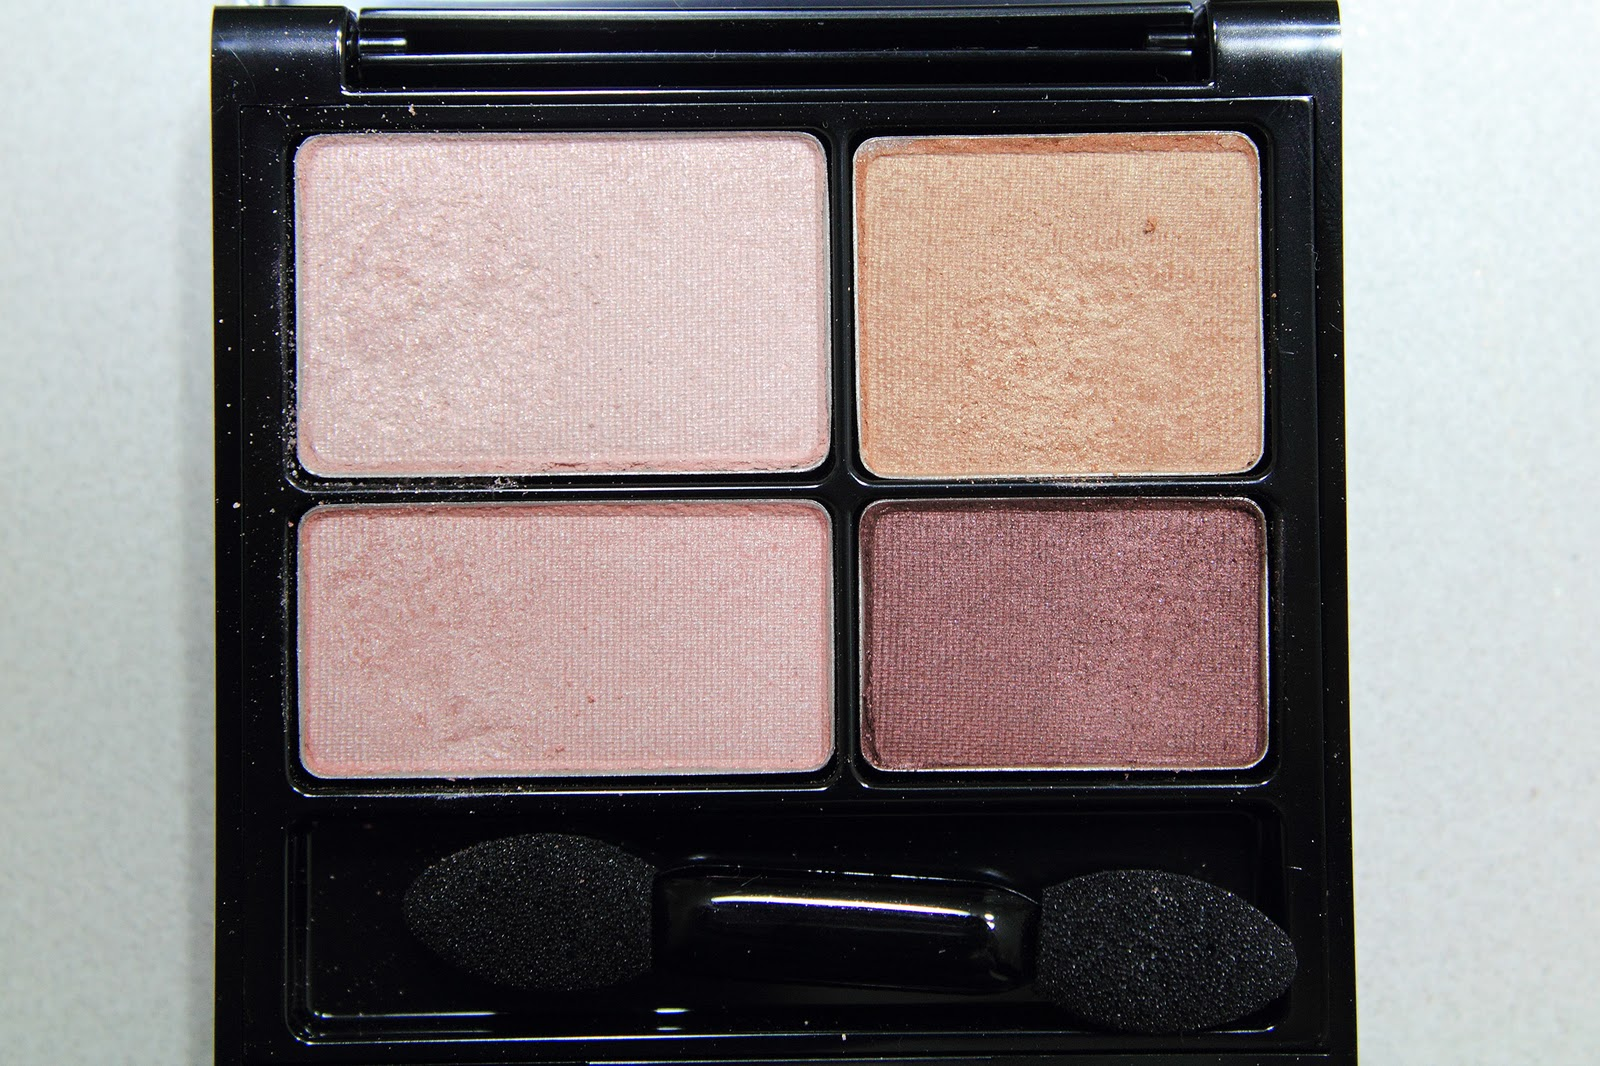 Nunu will blog for chicken wings revlon colorstay 16 hour revlon colorstay 16 hour eyeshadow quad review and swatch ccuart Images